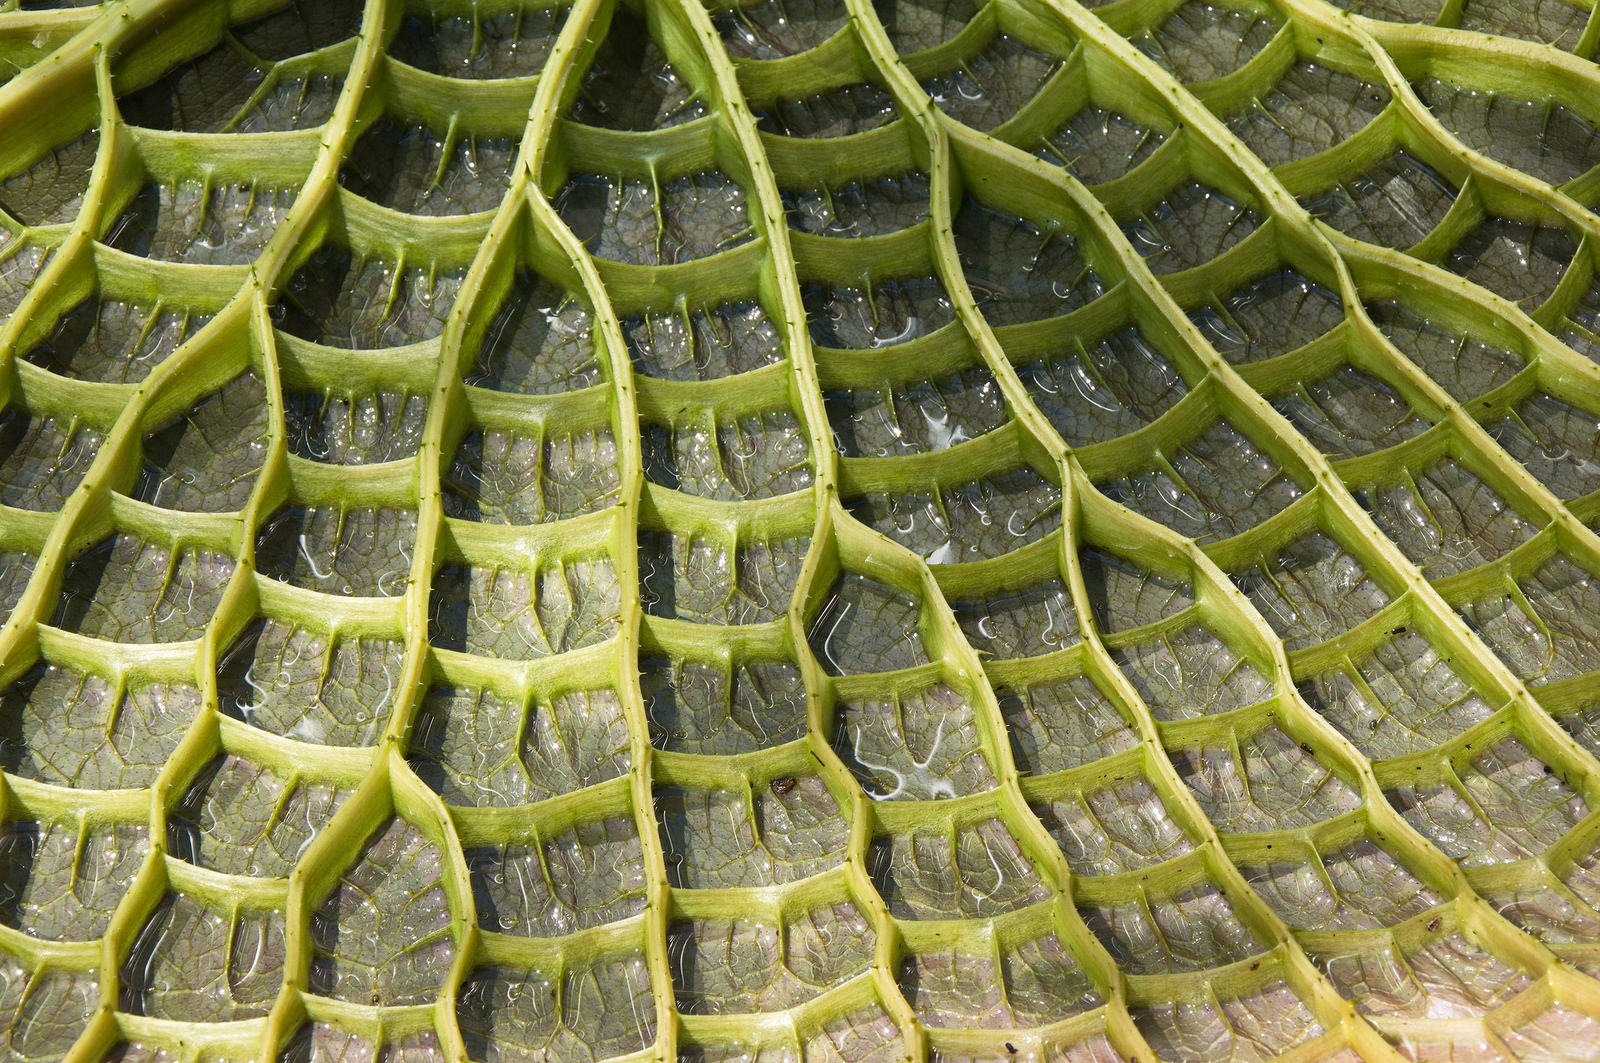 Details of the underside of a Victoria cruziana leaf